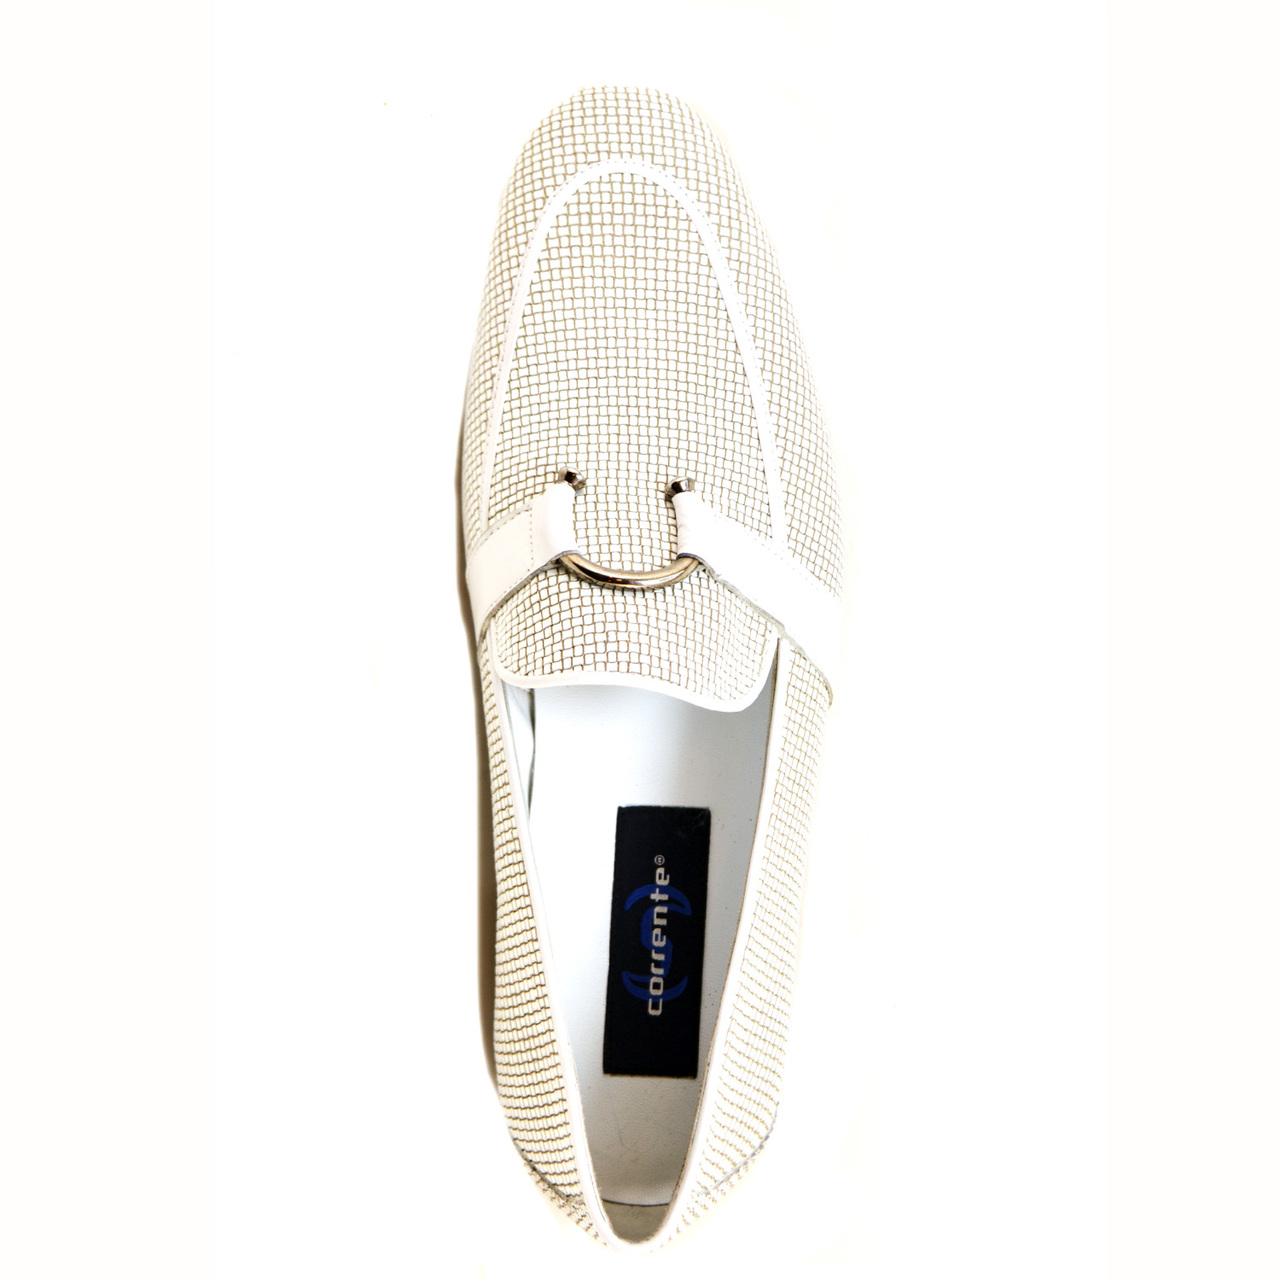 Corrente 4905 Woven Loafer with horseshoe buckle- White